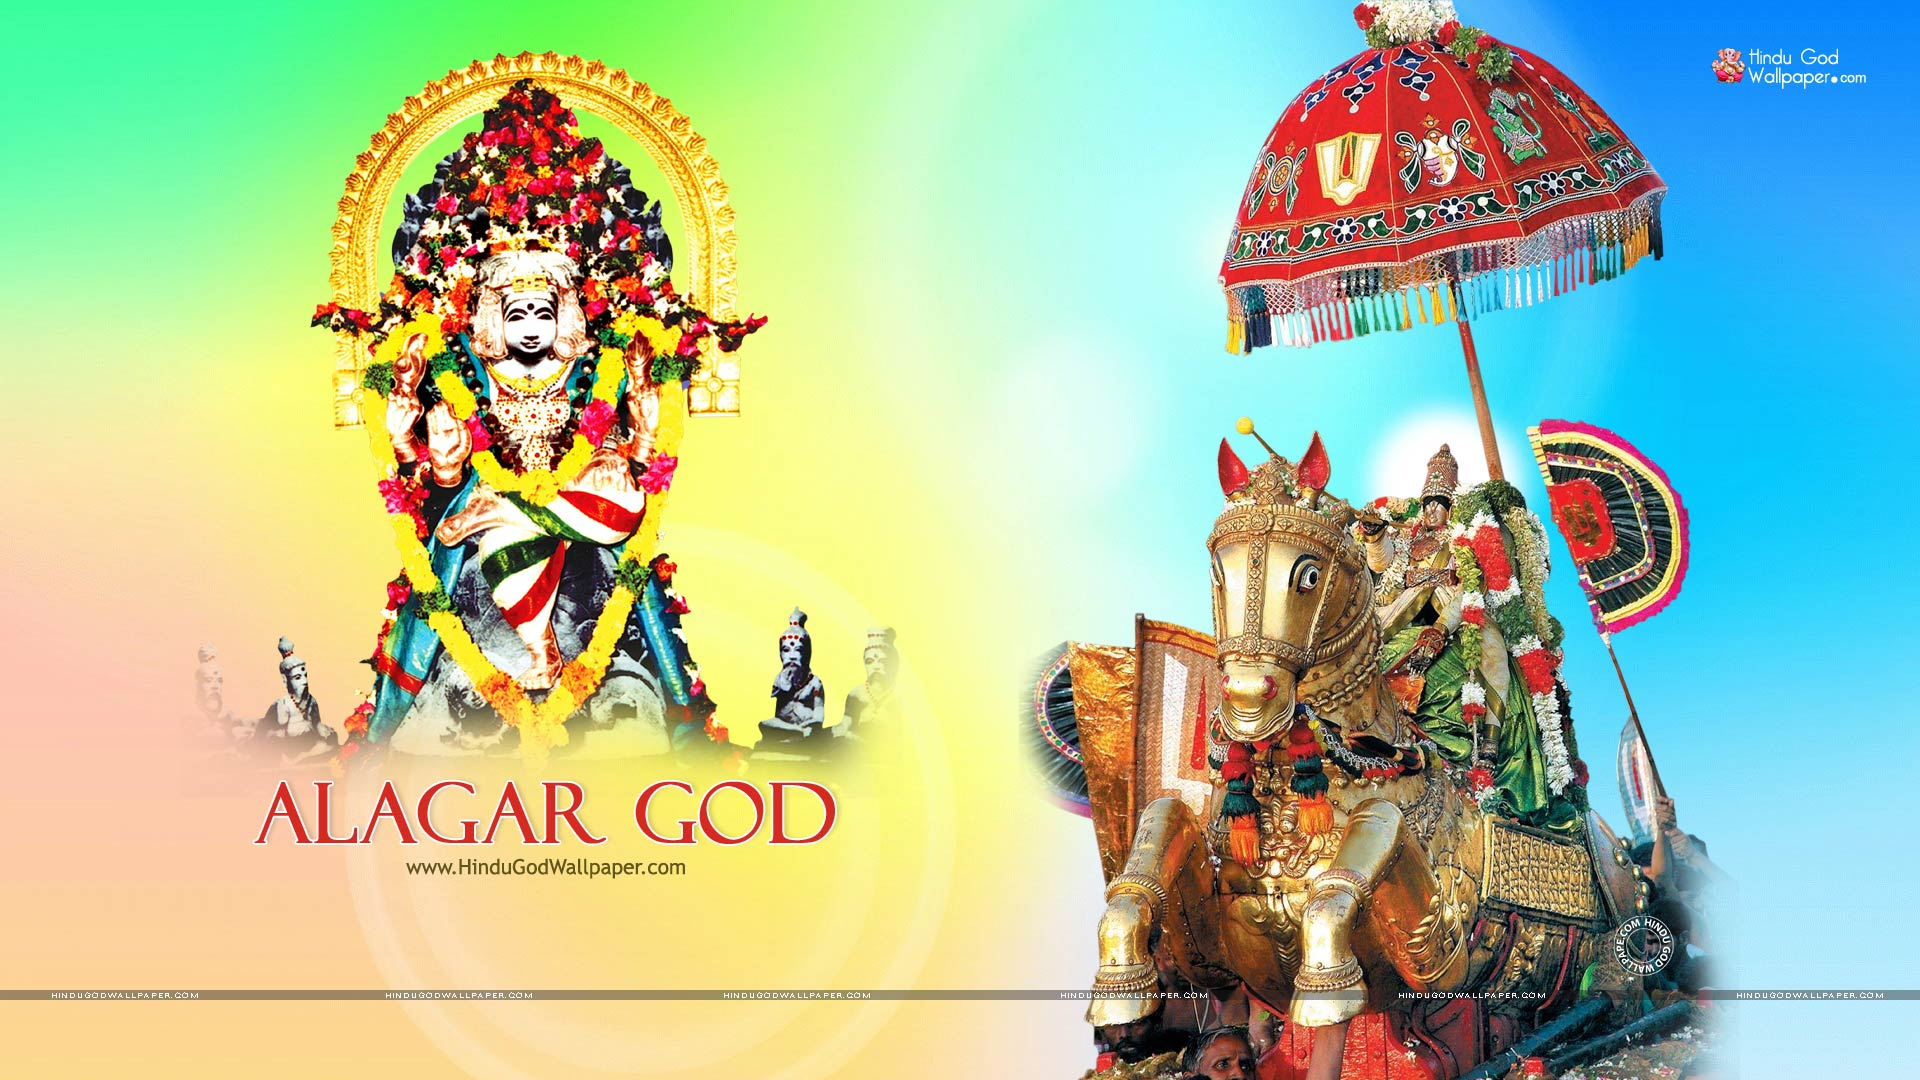 Alagar God Hd Wallpapers 1920x1080 Full Size Images Download